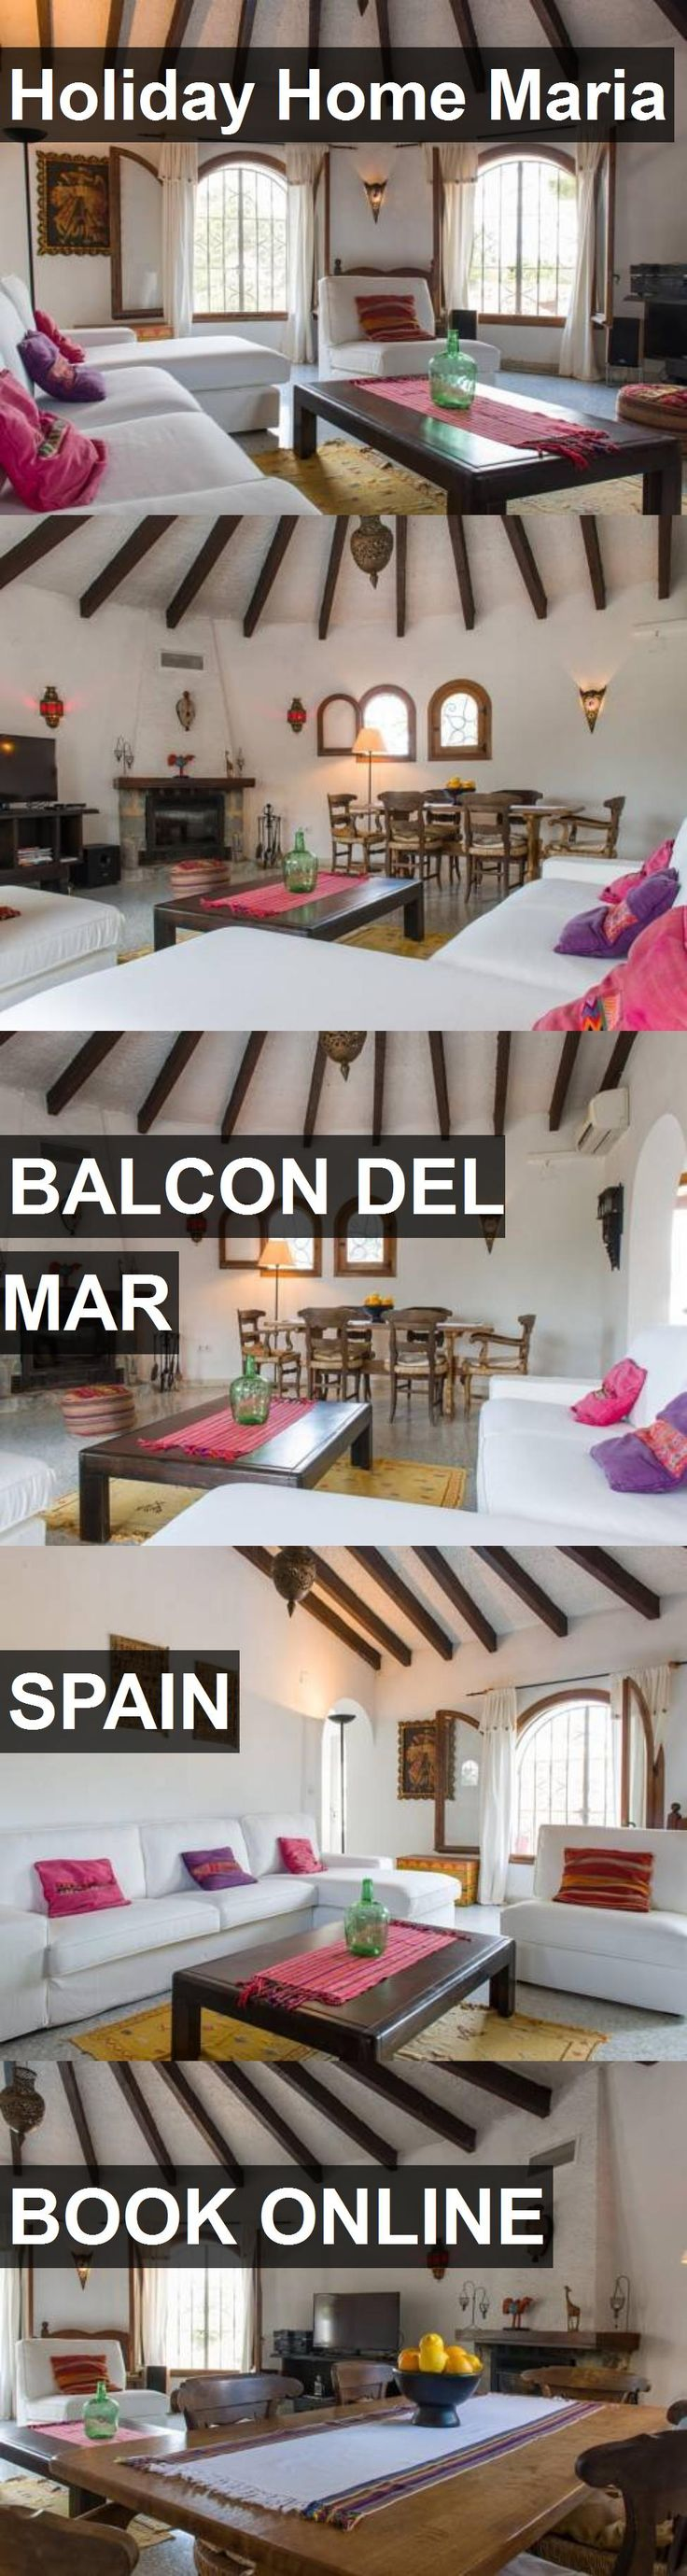 Hotel Holiday Home Maria in Balcon del Mar, Spain. For more information, photos, reviews and best prices please follow the link. #Spain #BalcondelMar #hotel #travel #vacation